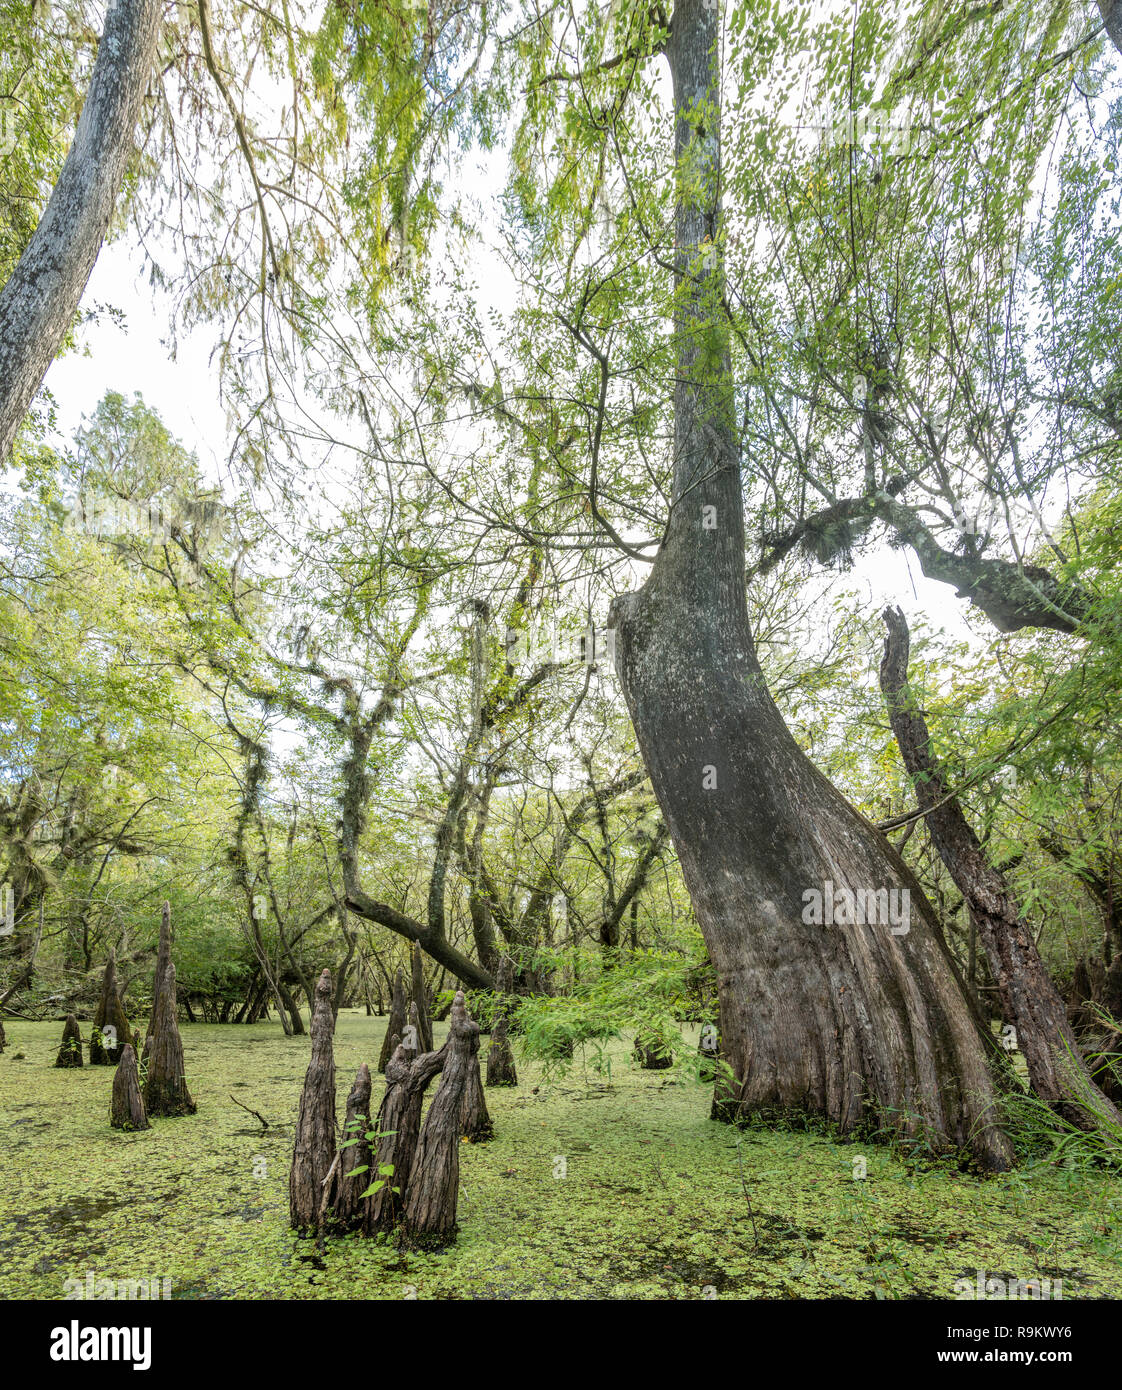 Freshwater Florida swamp with Cypress tree knees and Water Spangles - Stock Image